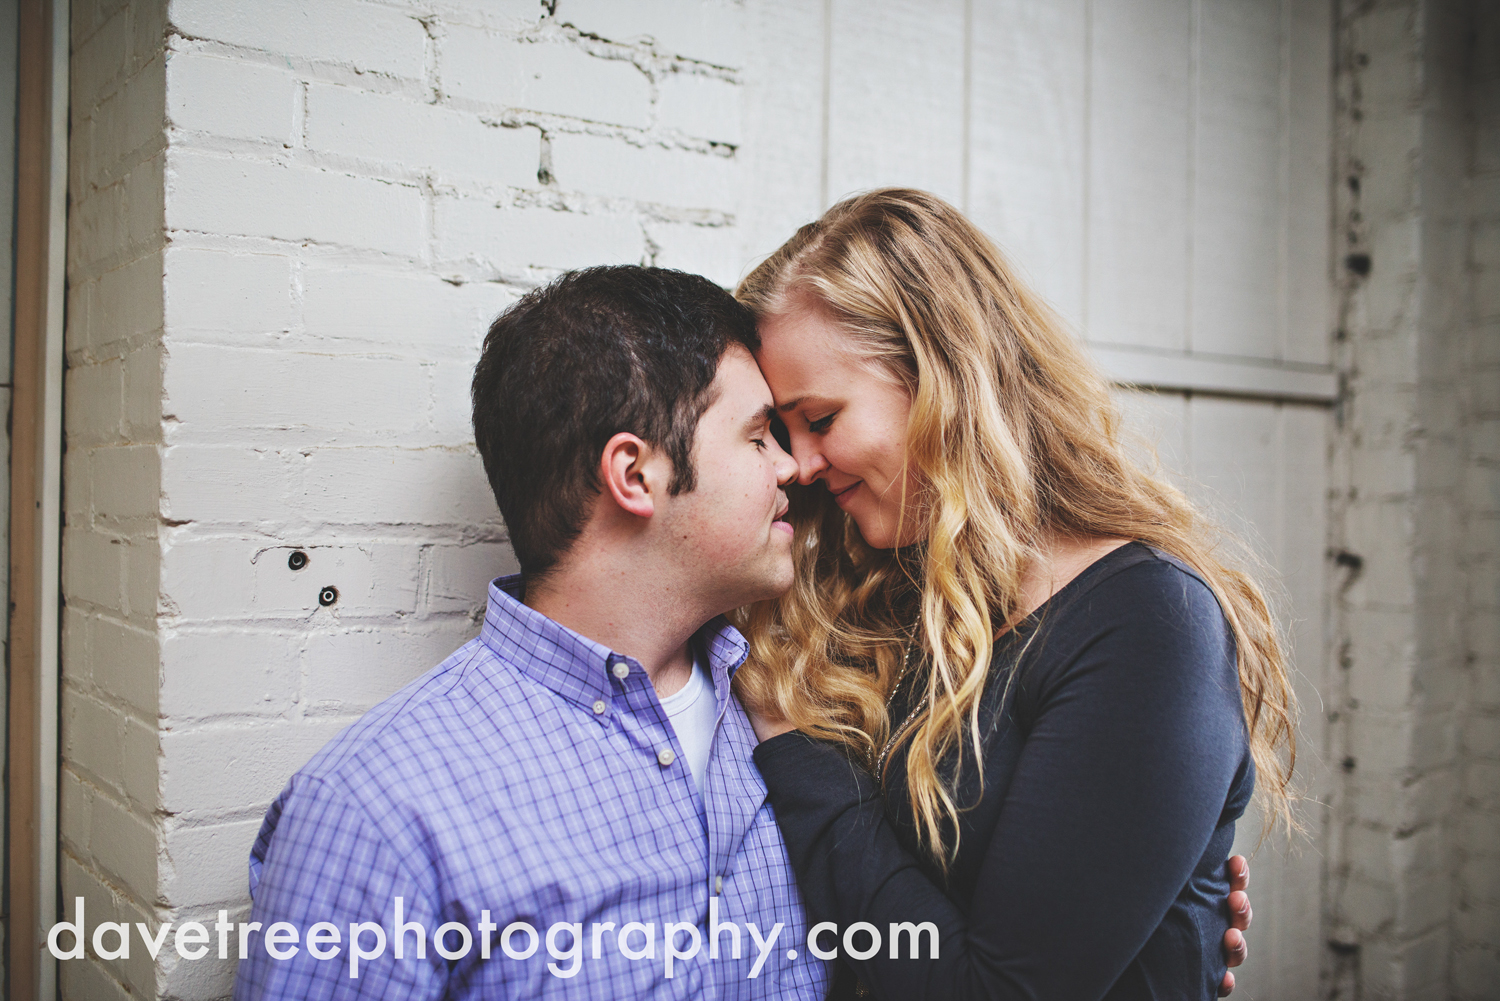 kalamazoo_engagement_photographer_312.jpg